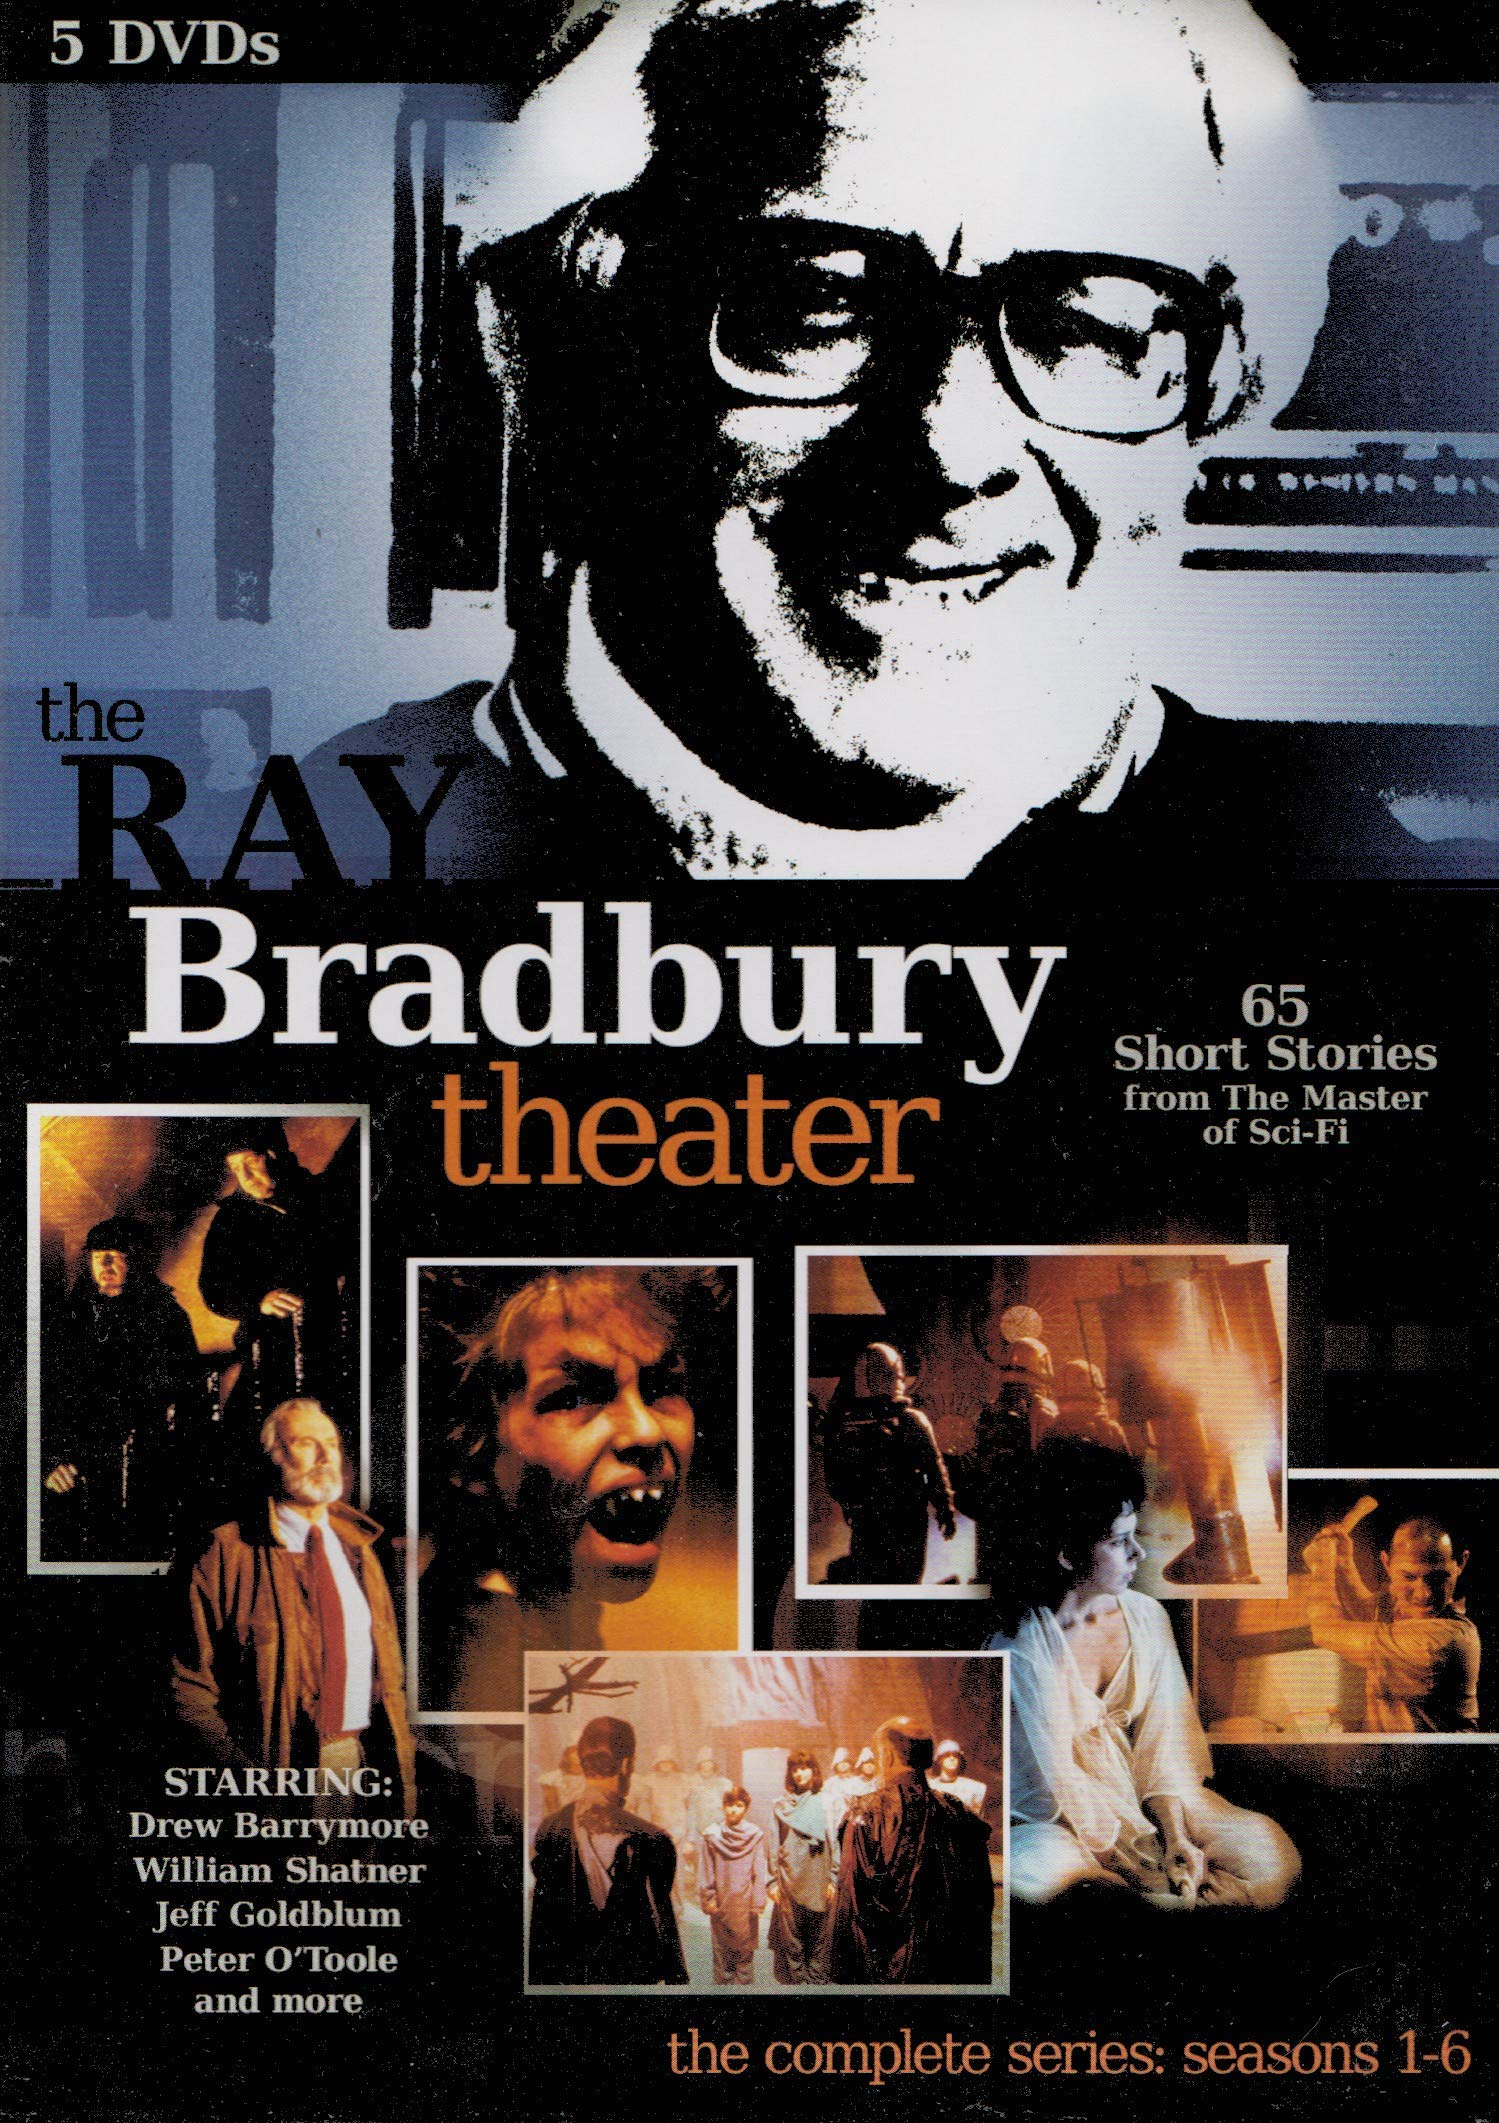 The Ray Bradbury Theater: The Complete Series